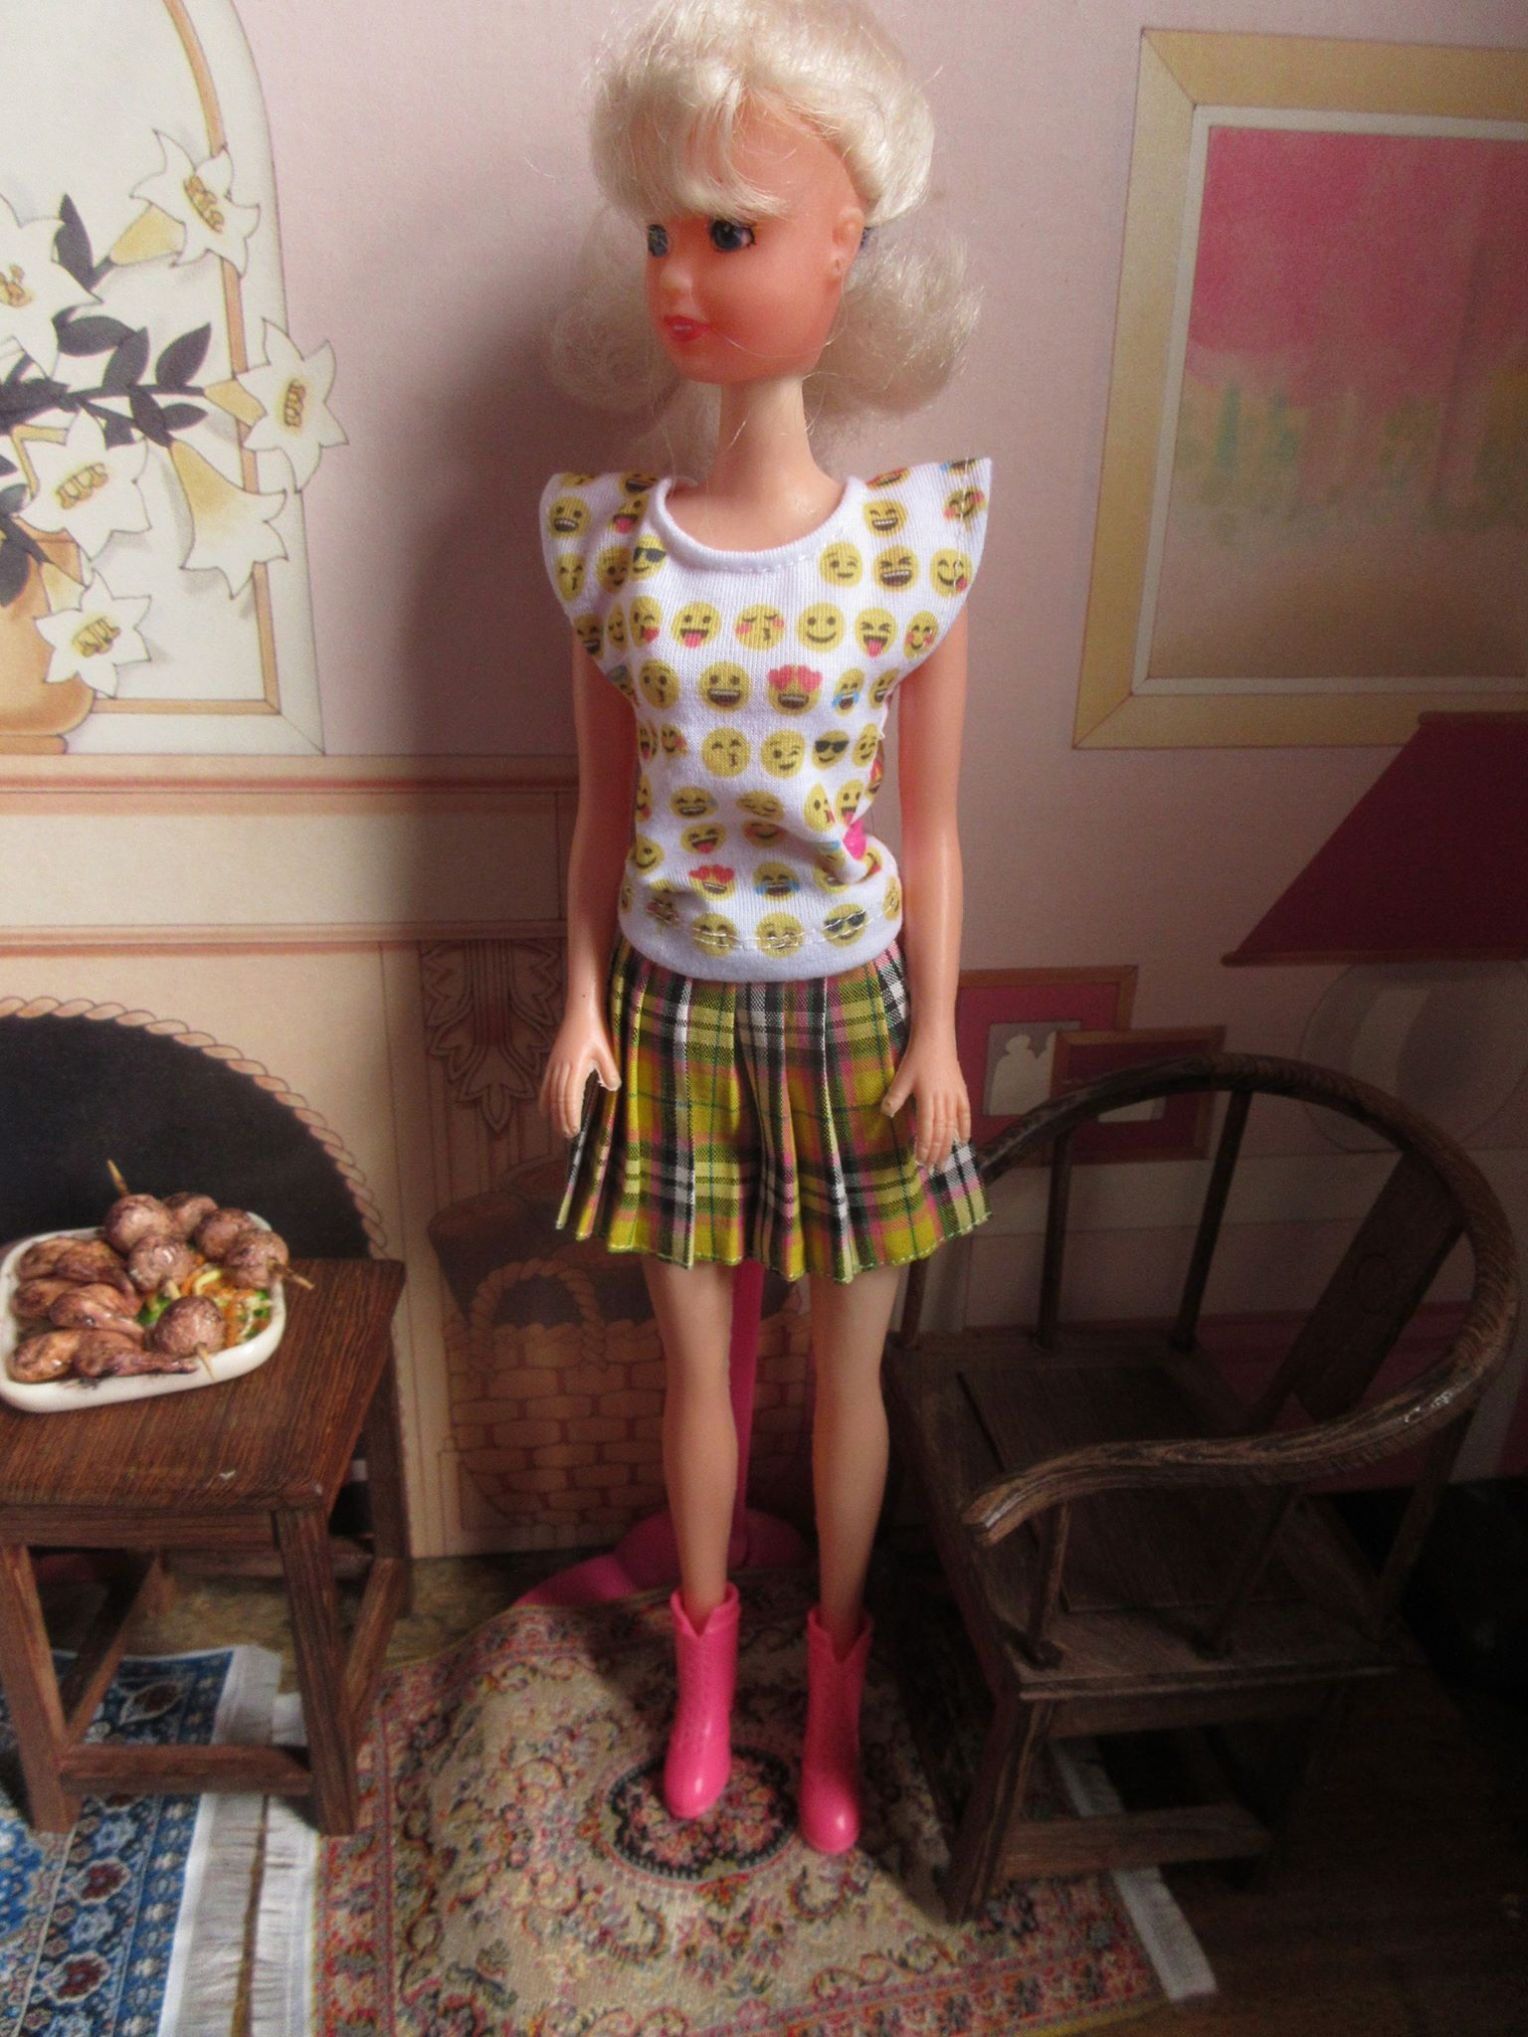 Peter Jeffery scene with Sindy in ShimmyShim T-shirt and yellow kilt.